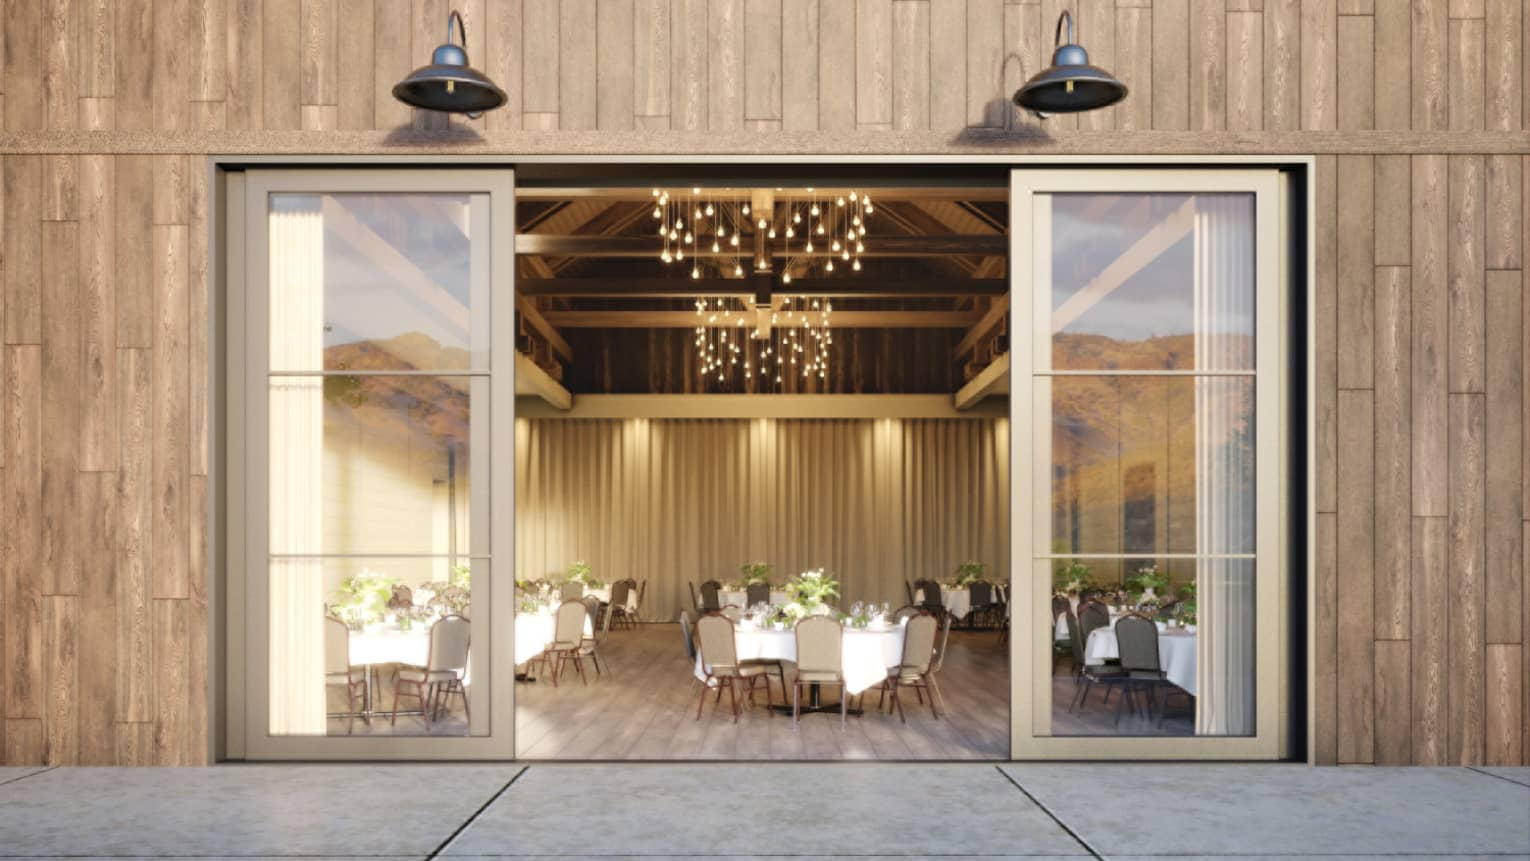 View from patio through large sliding glass doors to elegant event space with tables, chandelier